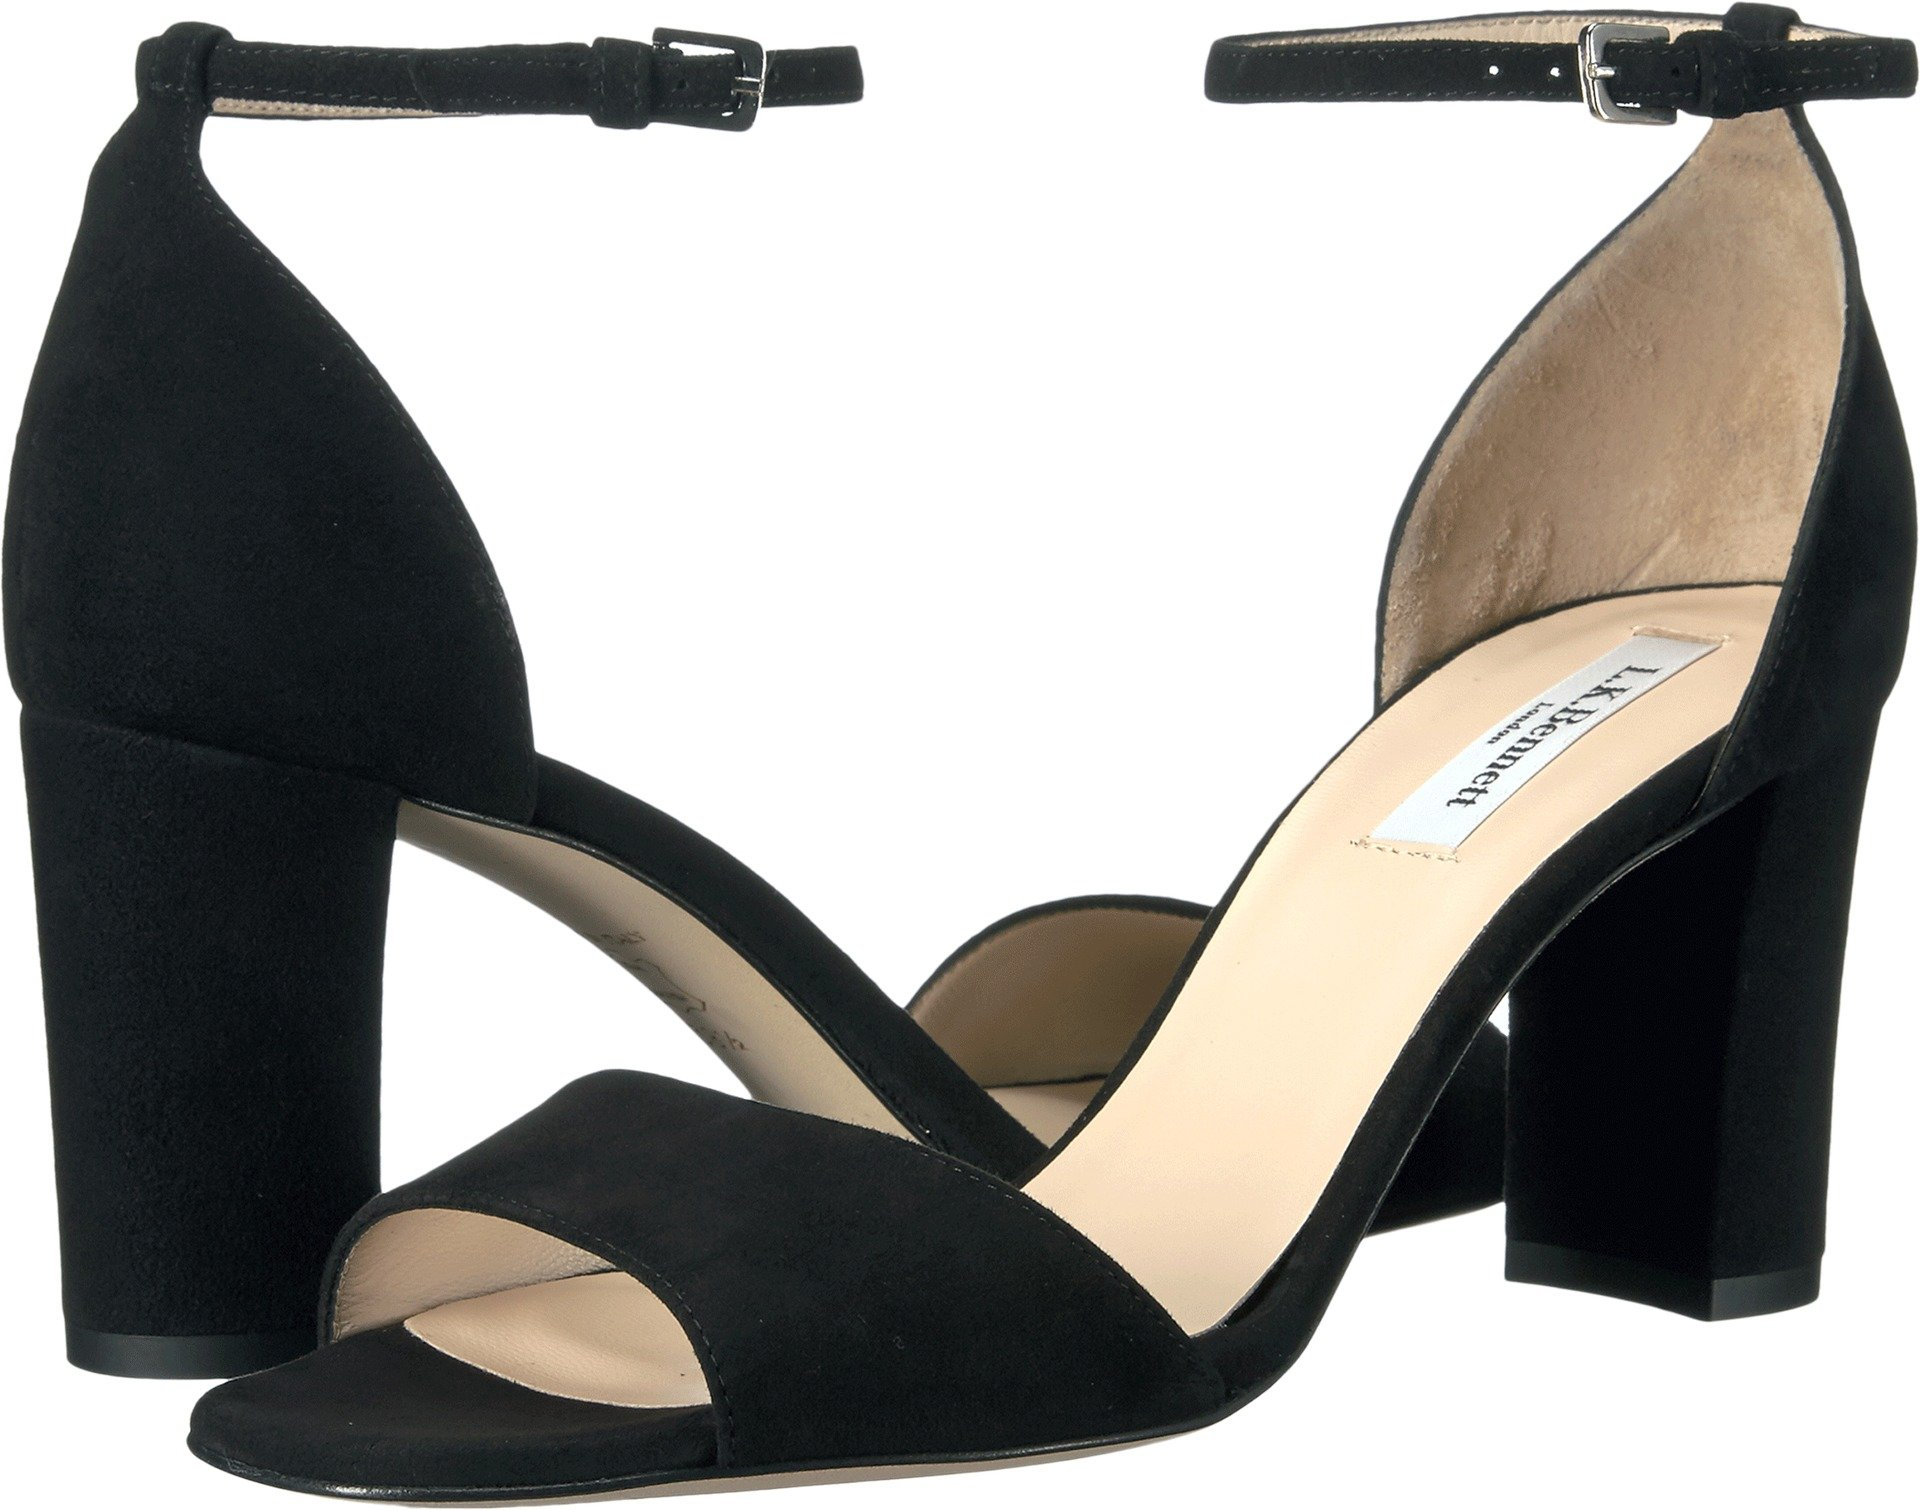 L.K. Bennett Women's Helena Dress Sandal, Black, 39.5 EU/9.5 M US